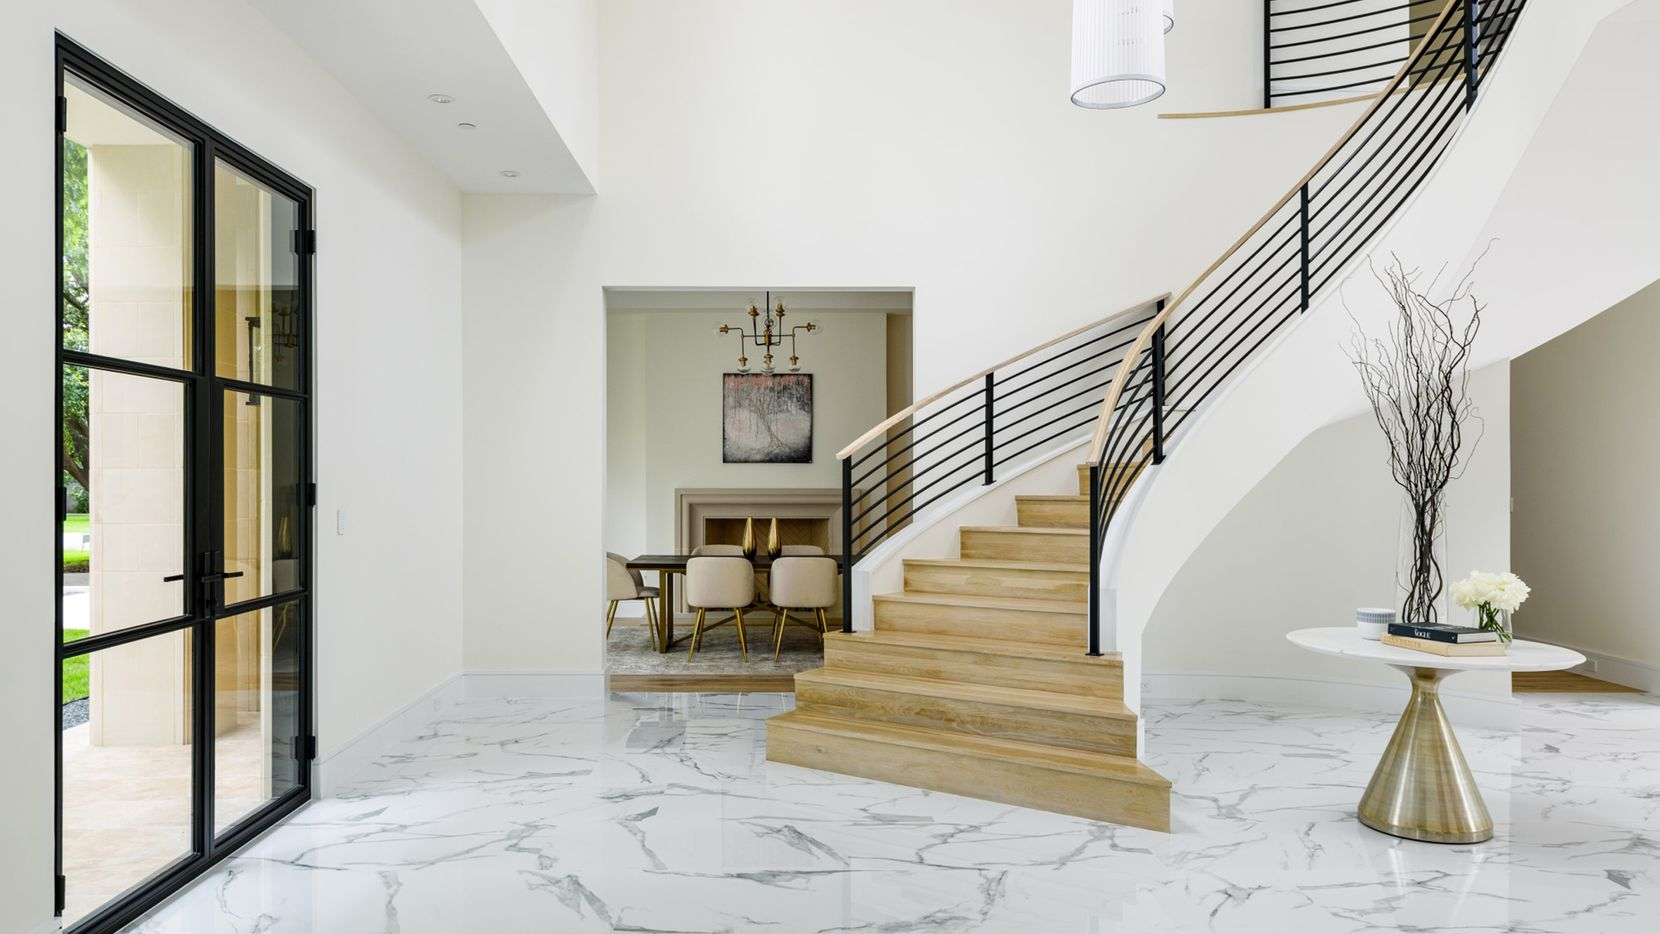 The new-construction home at 6315 Northwood Road in Preston Hollow features 7,000 square feet of living space.